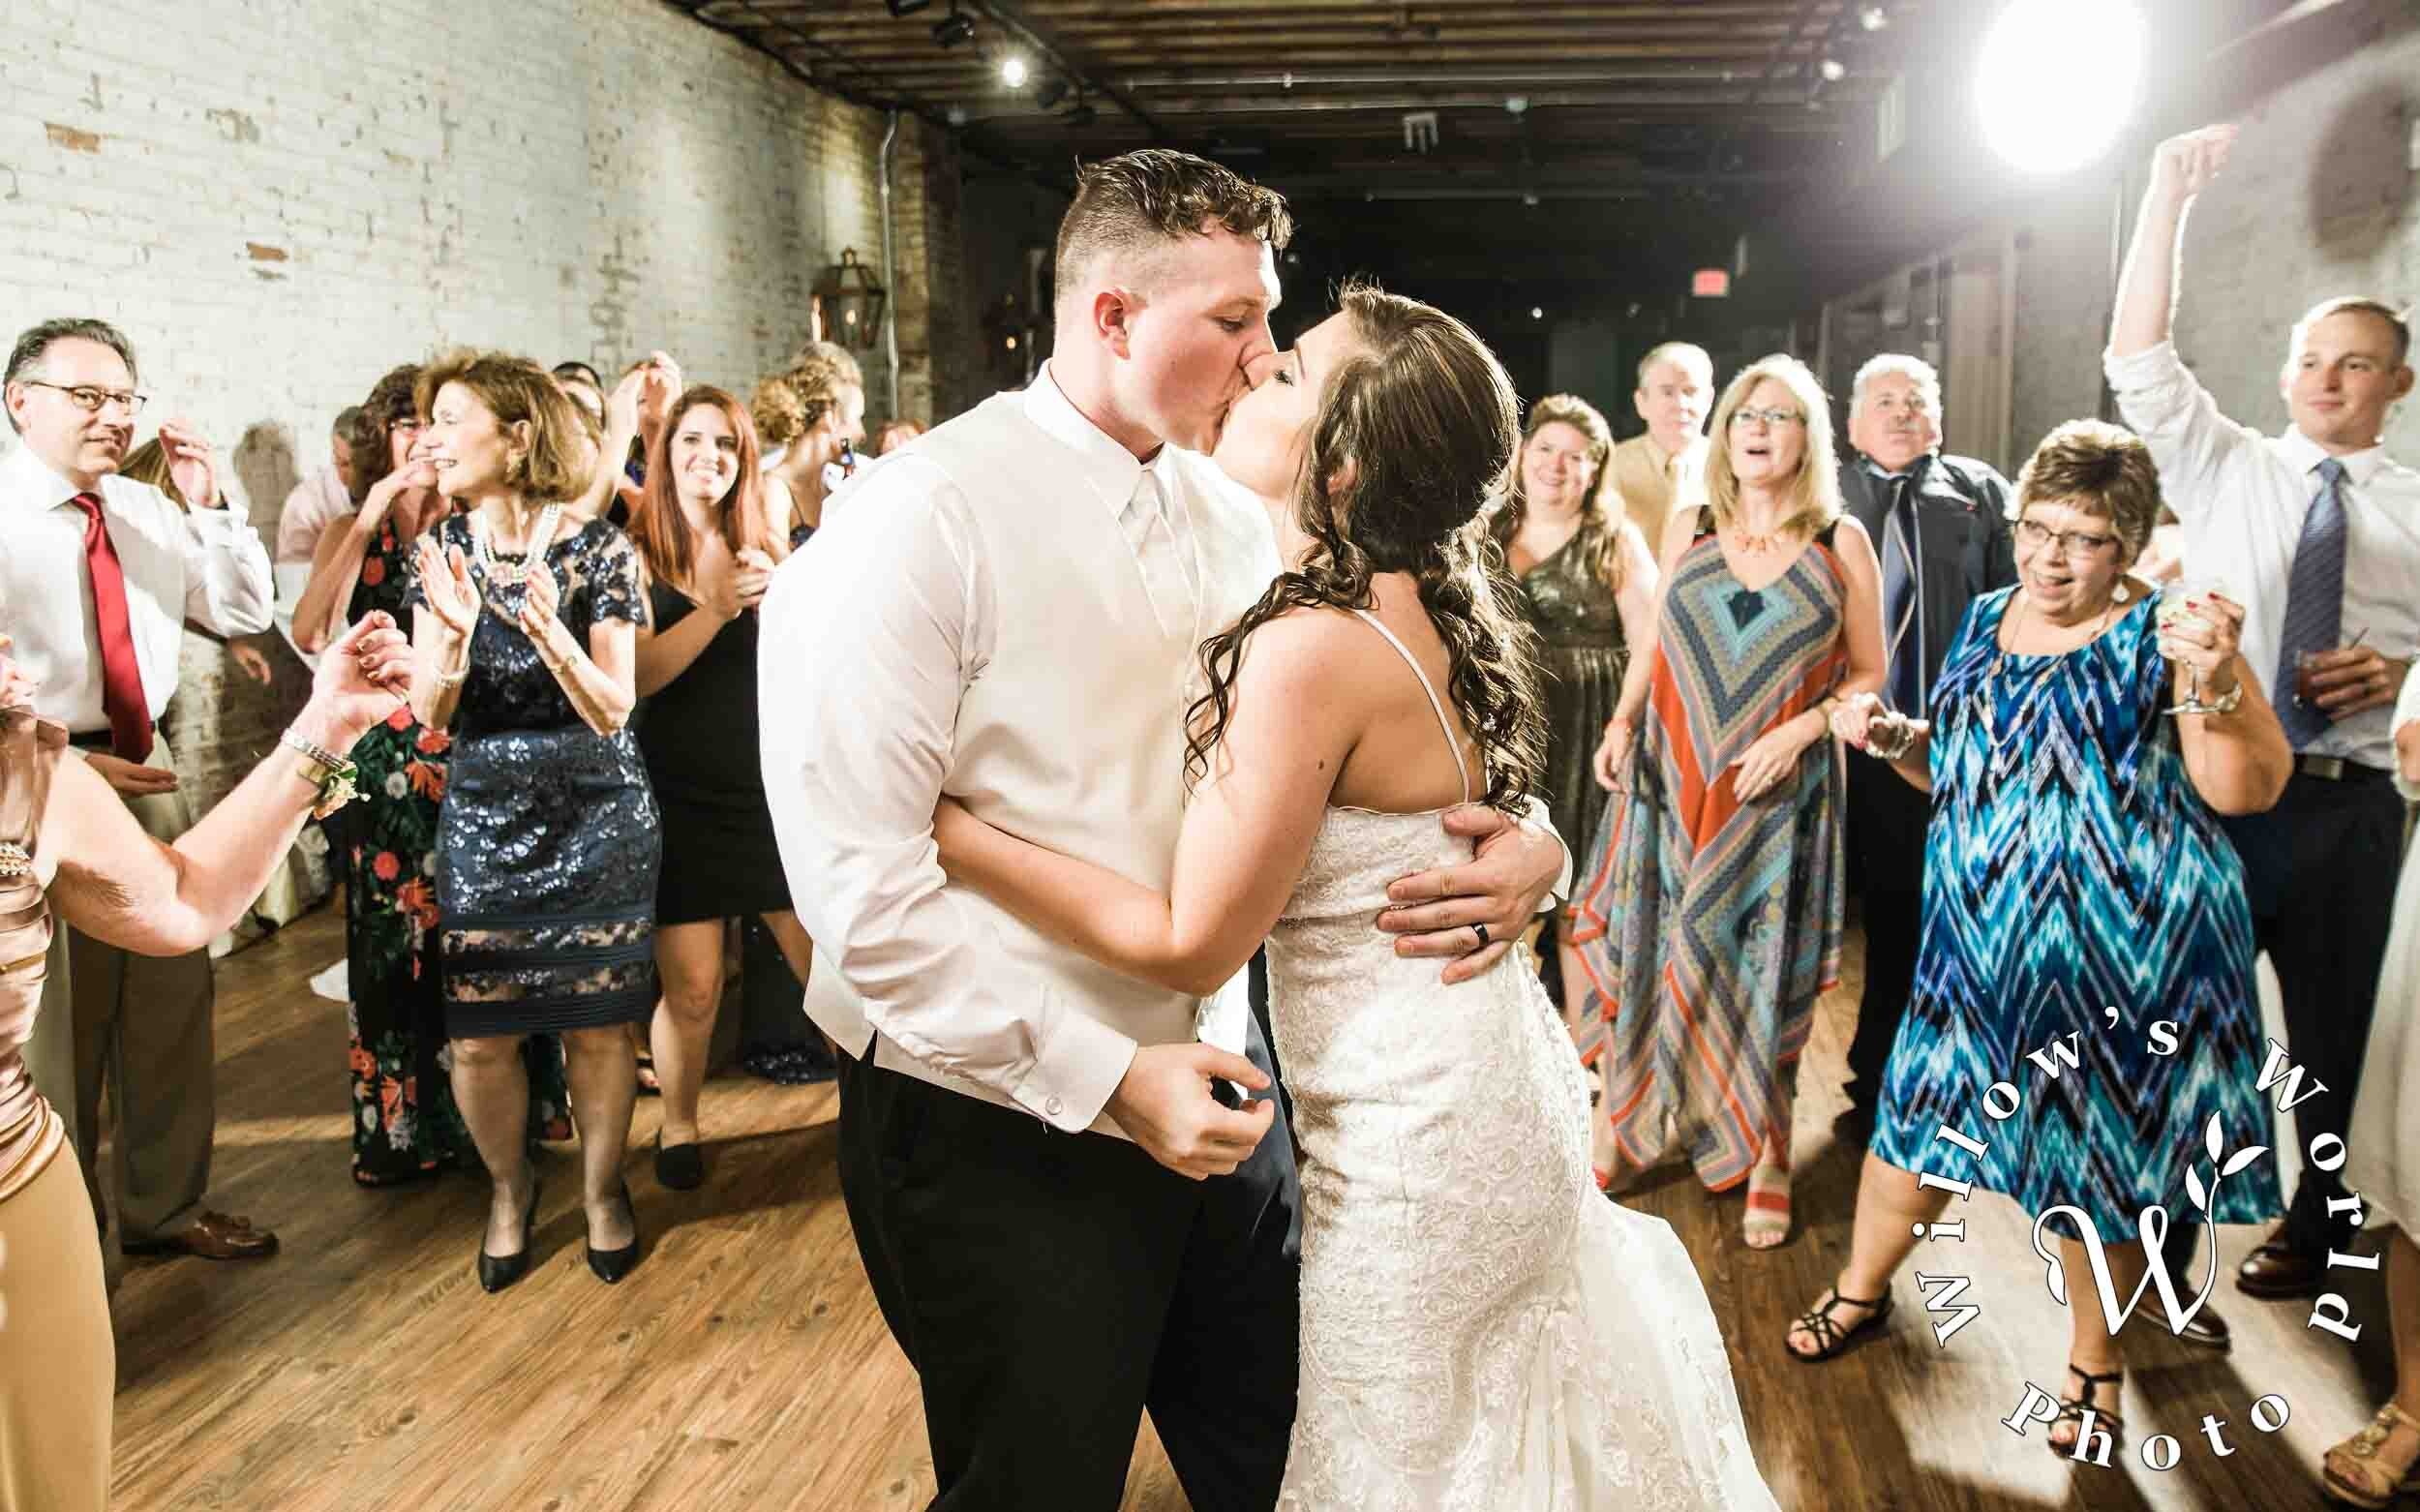 105-The-Chicory-New-Orleans-Wedding-Reception-Photo-Willows-World-Photo-2-Edit.jpg